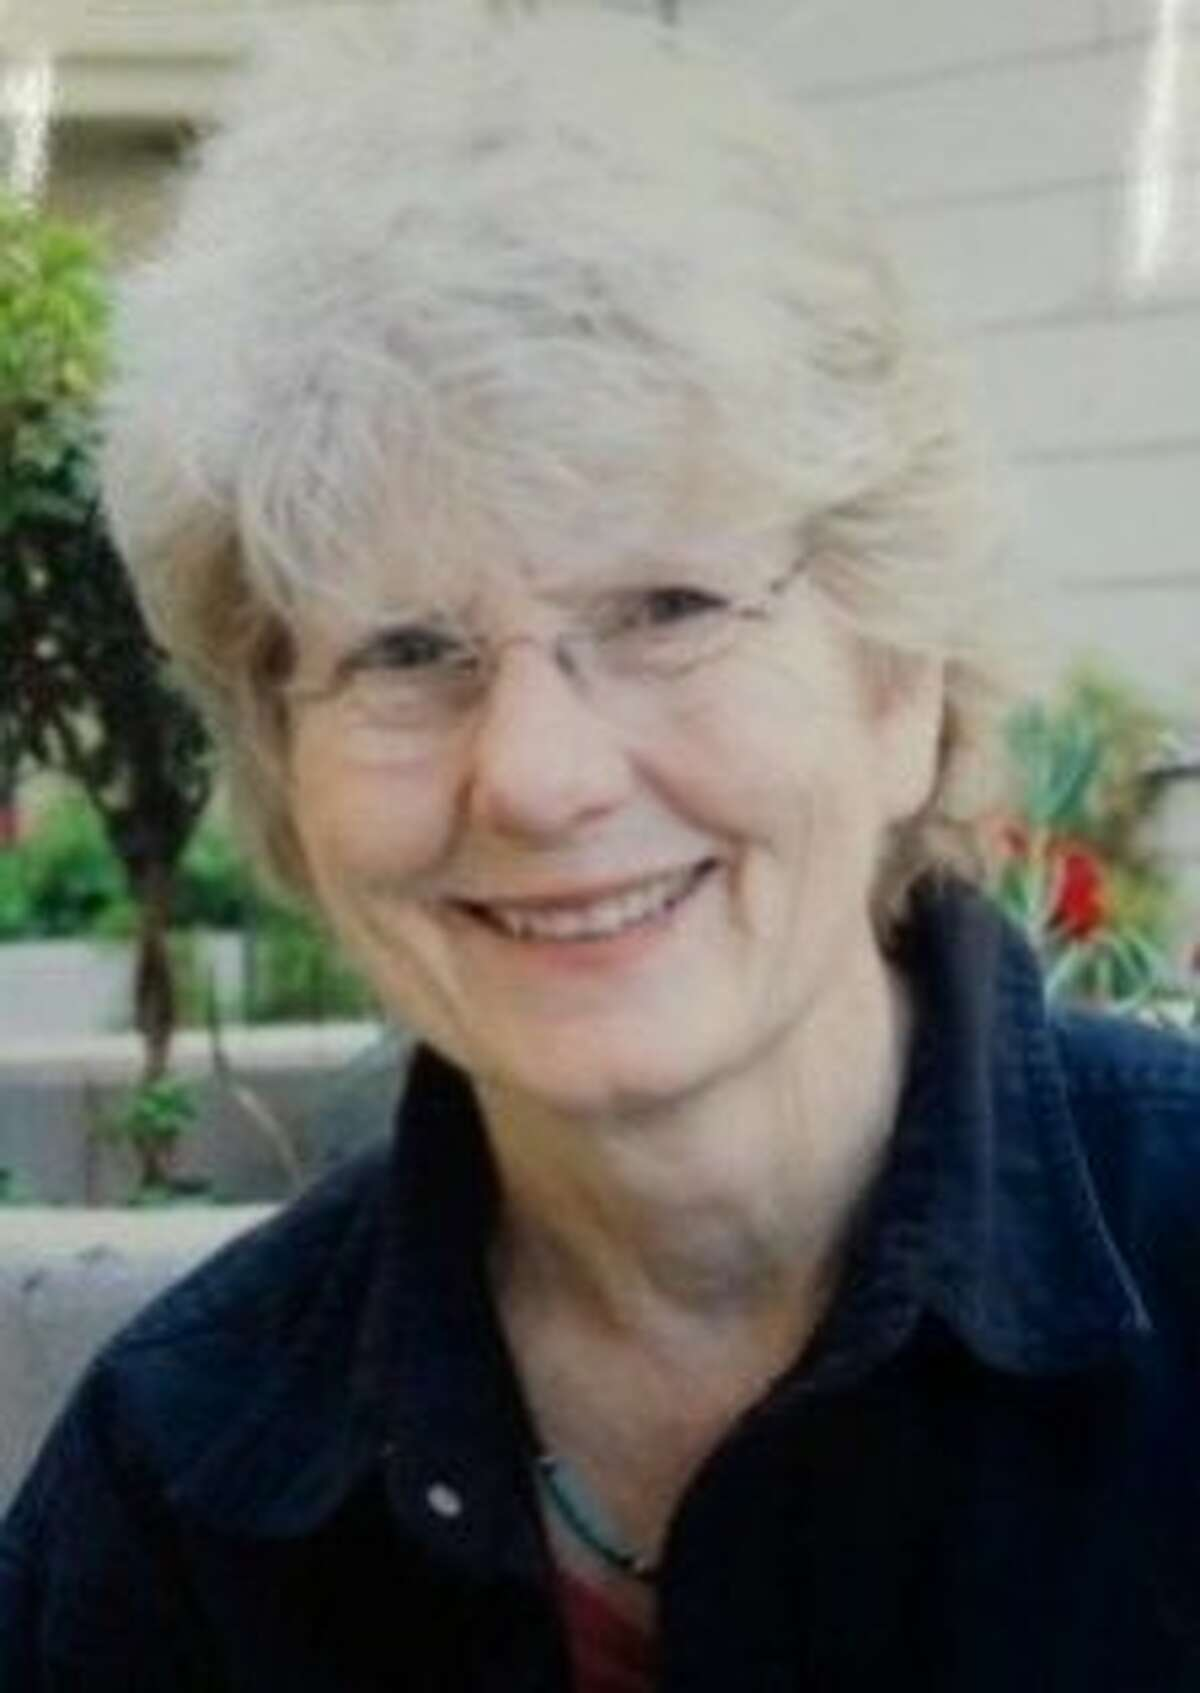 Nancy Jo McClellan, 72, of Emeryville, died after being stabbed during a carjacking attempt in Berkeley on September 19, 2014. Kamau Berlin was charged with attempted murder and attempted carjacking in the case.